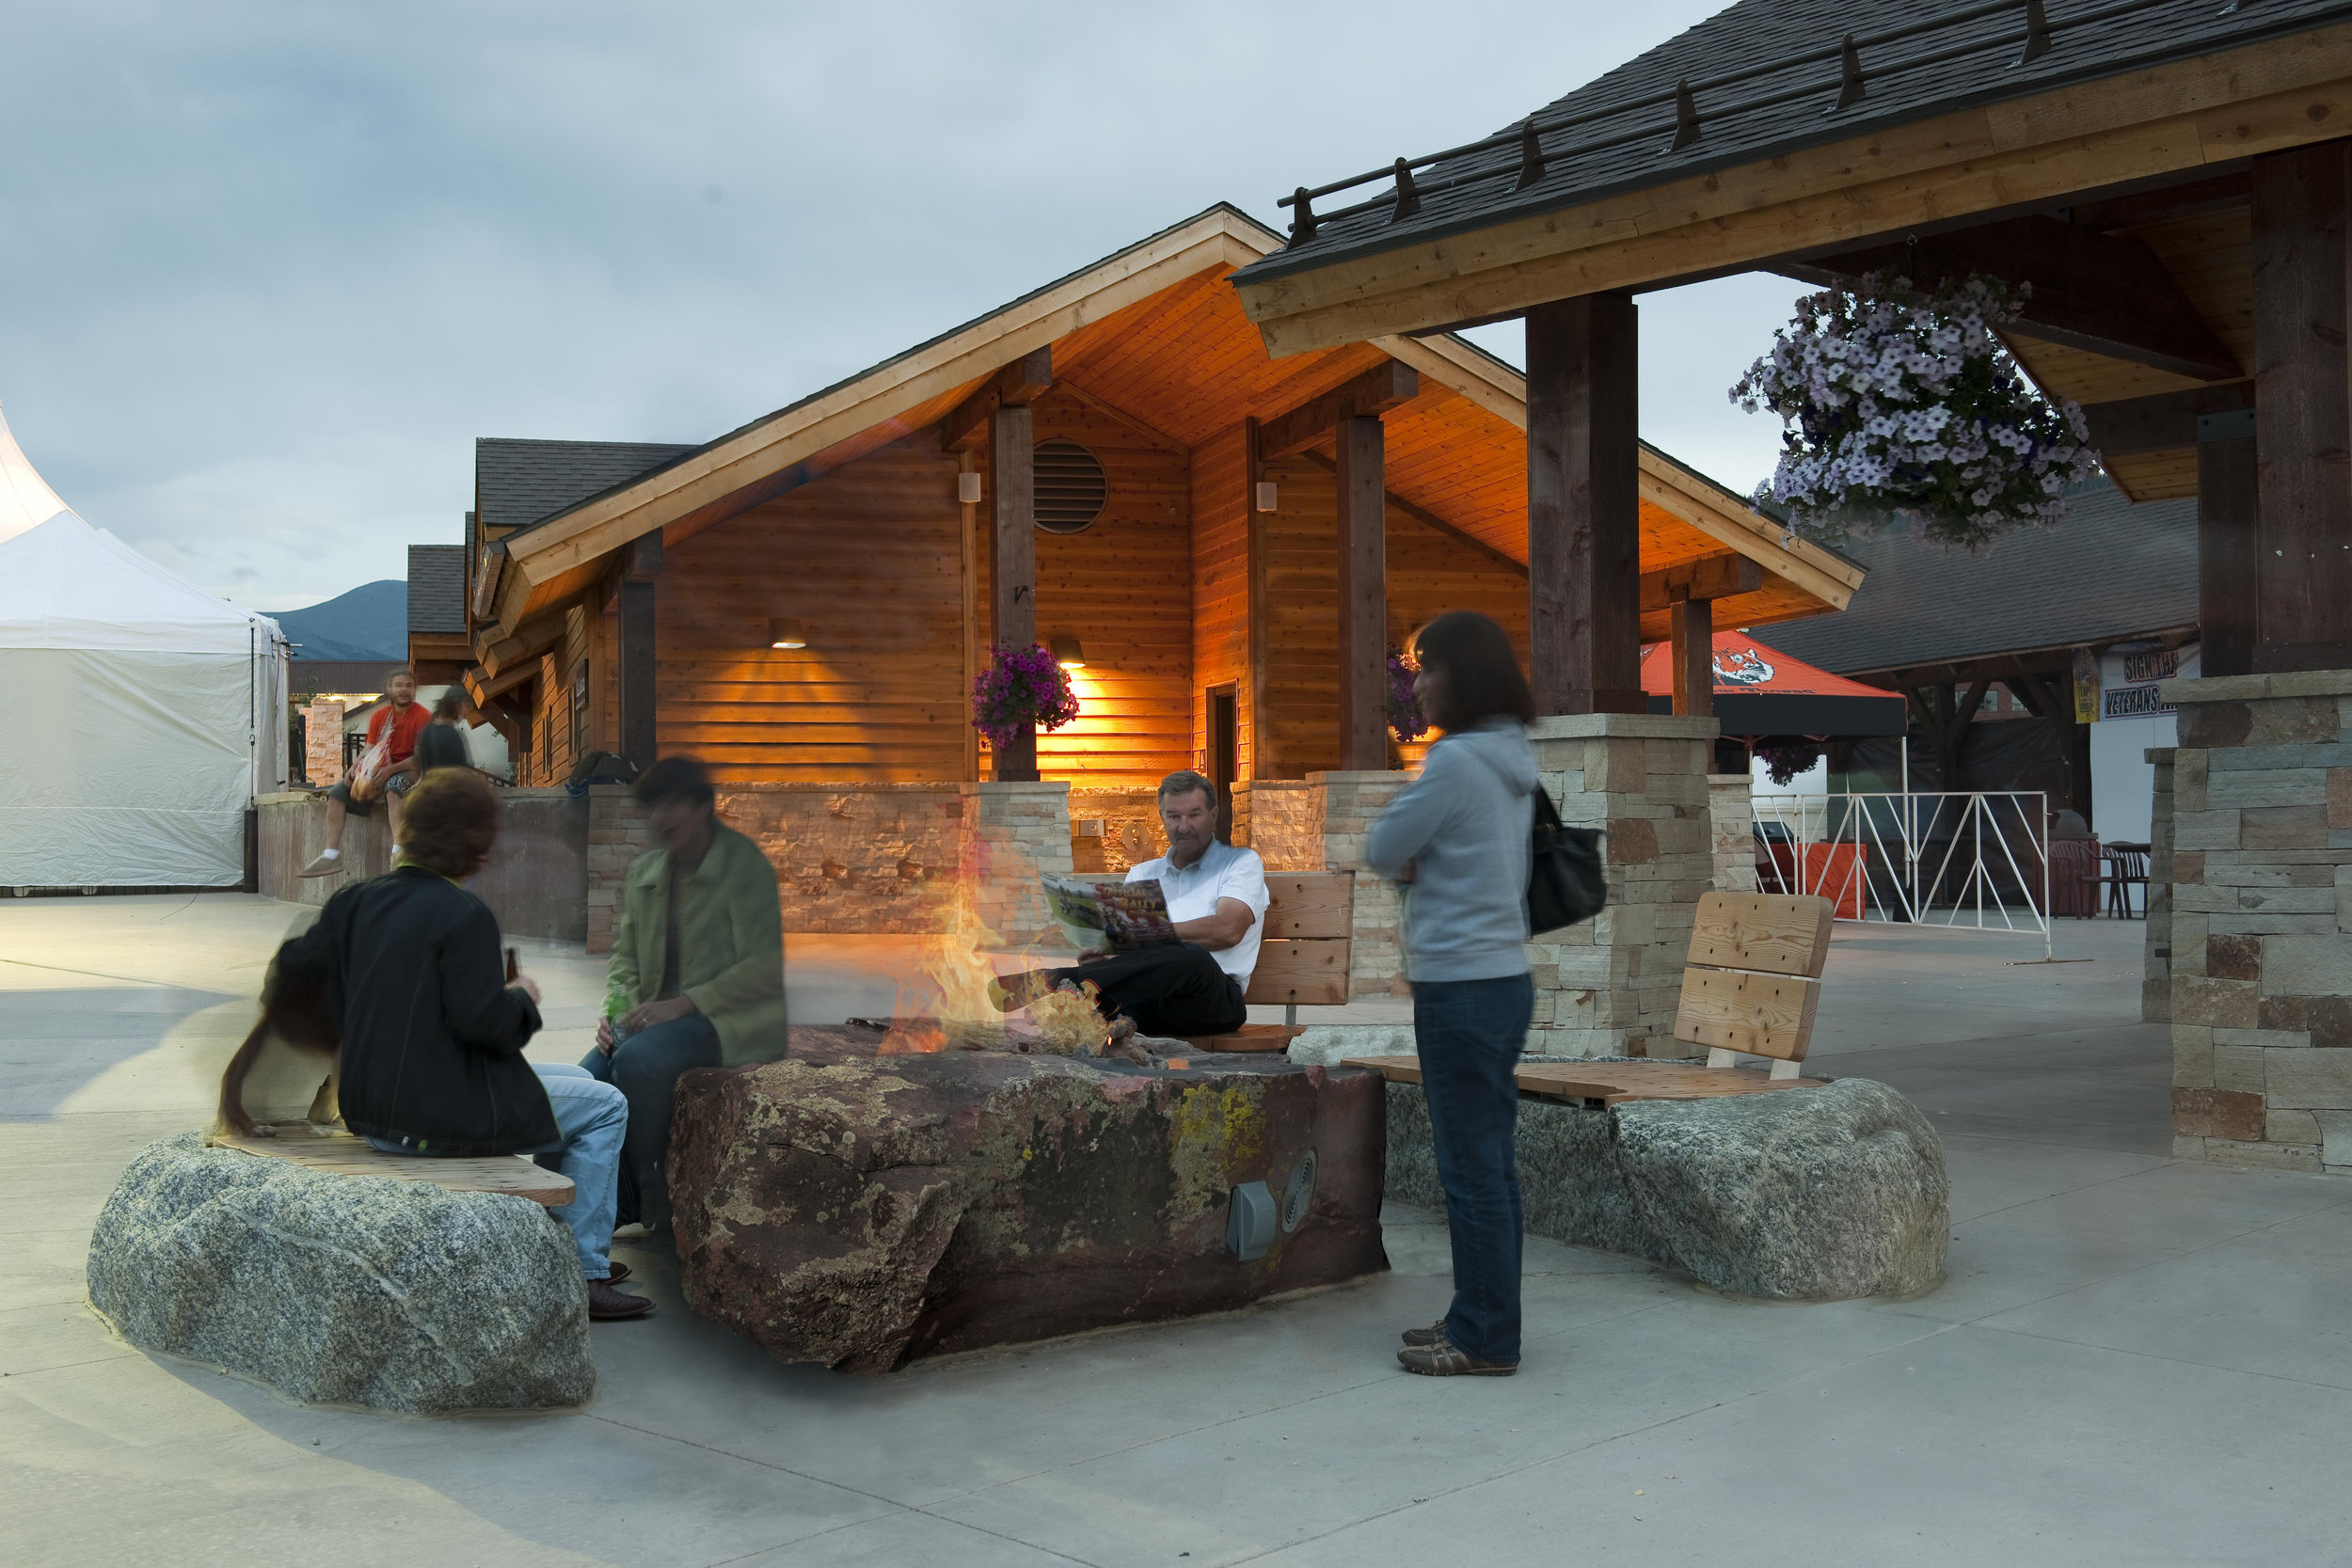 People gather to socialize at the fire pit at Hideaway Park in Colorado amphitheater concert and festival venue and playground